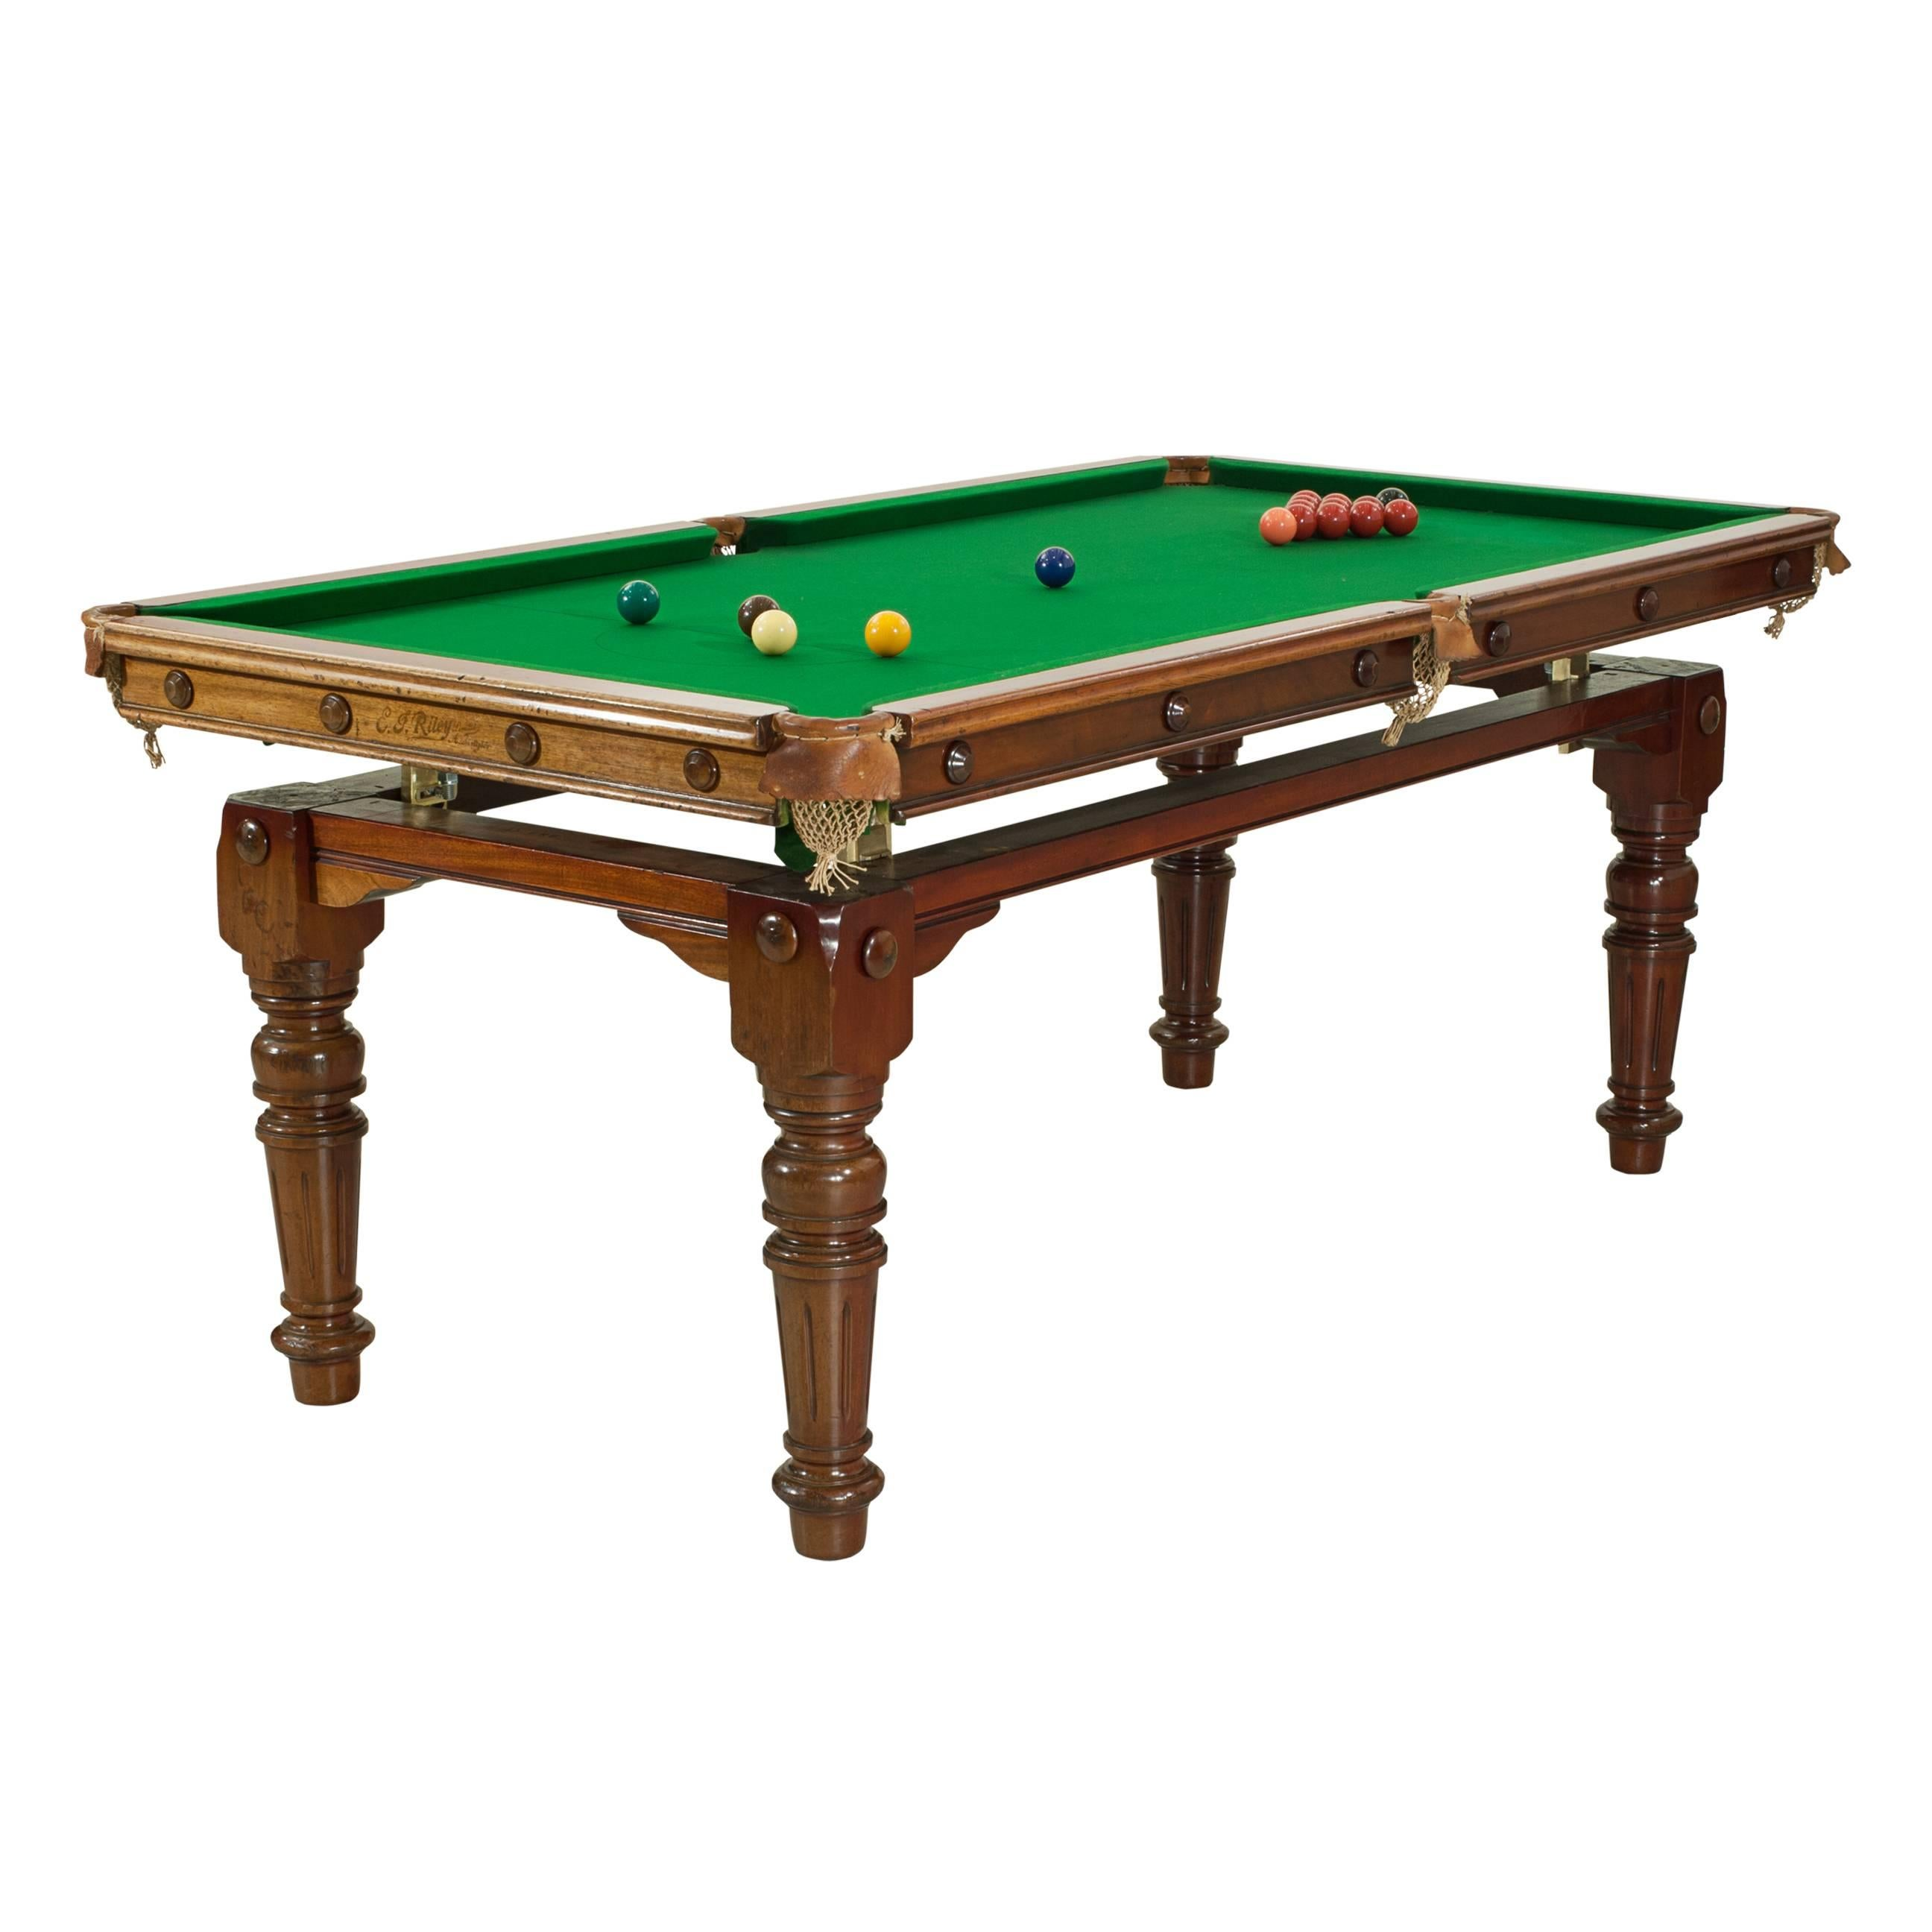 Pool table that is a dining table Second Hand Riley Billiard Snooker Pool Dining Table For Sale Loria Awards Riley Billiard Snooker Pool Dining Table At 1stdibs